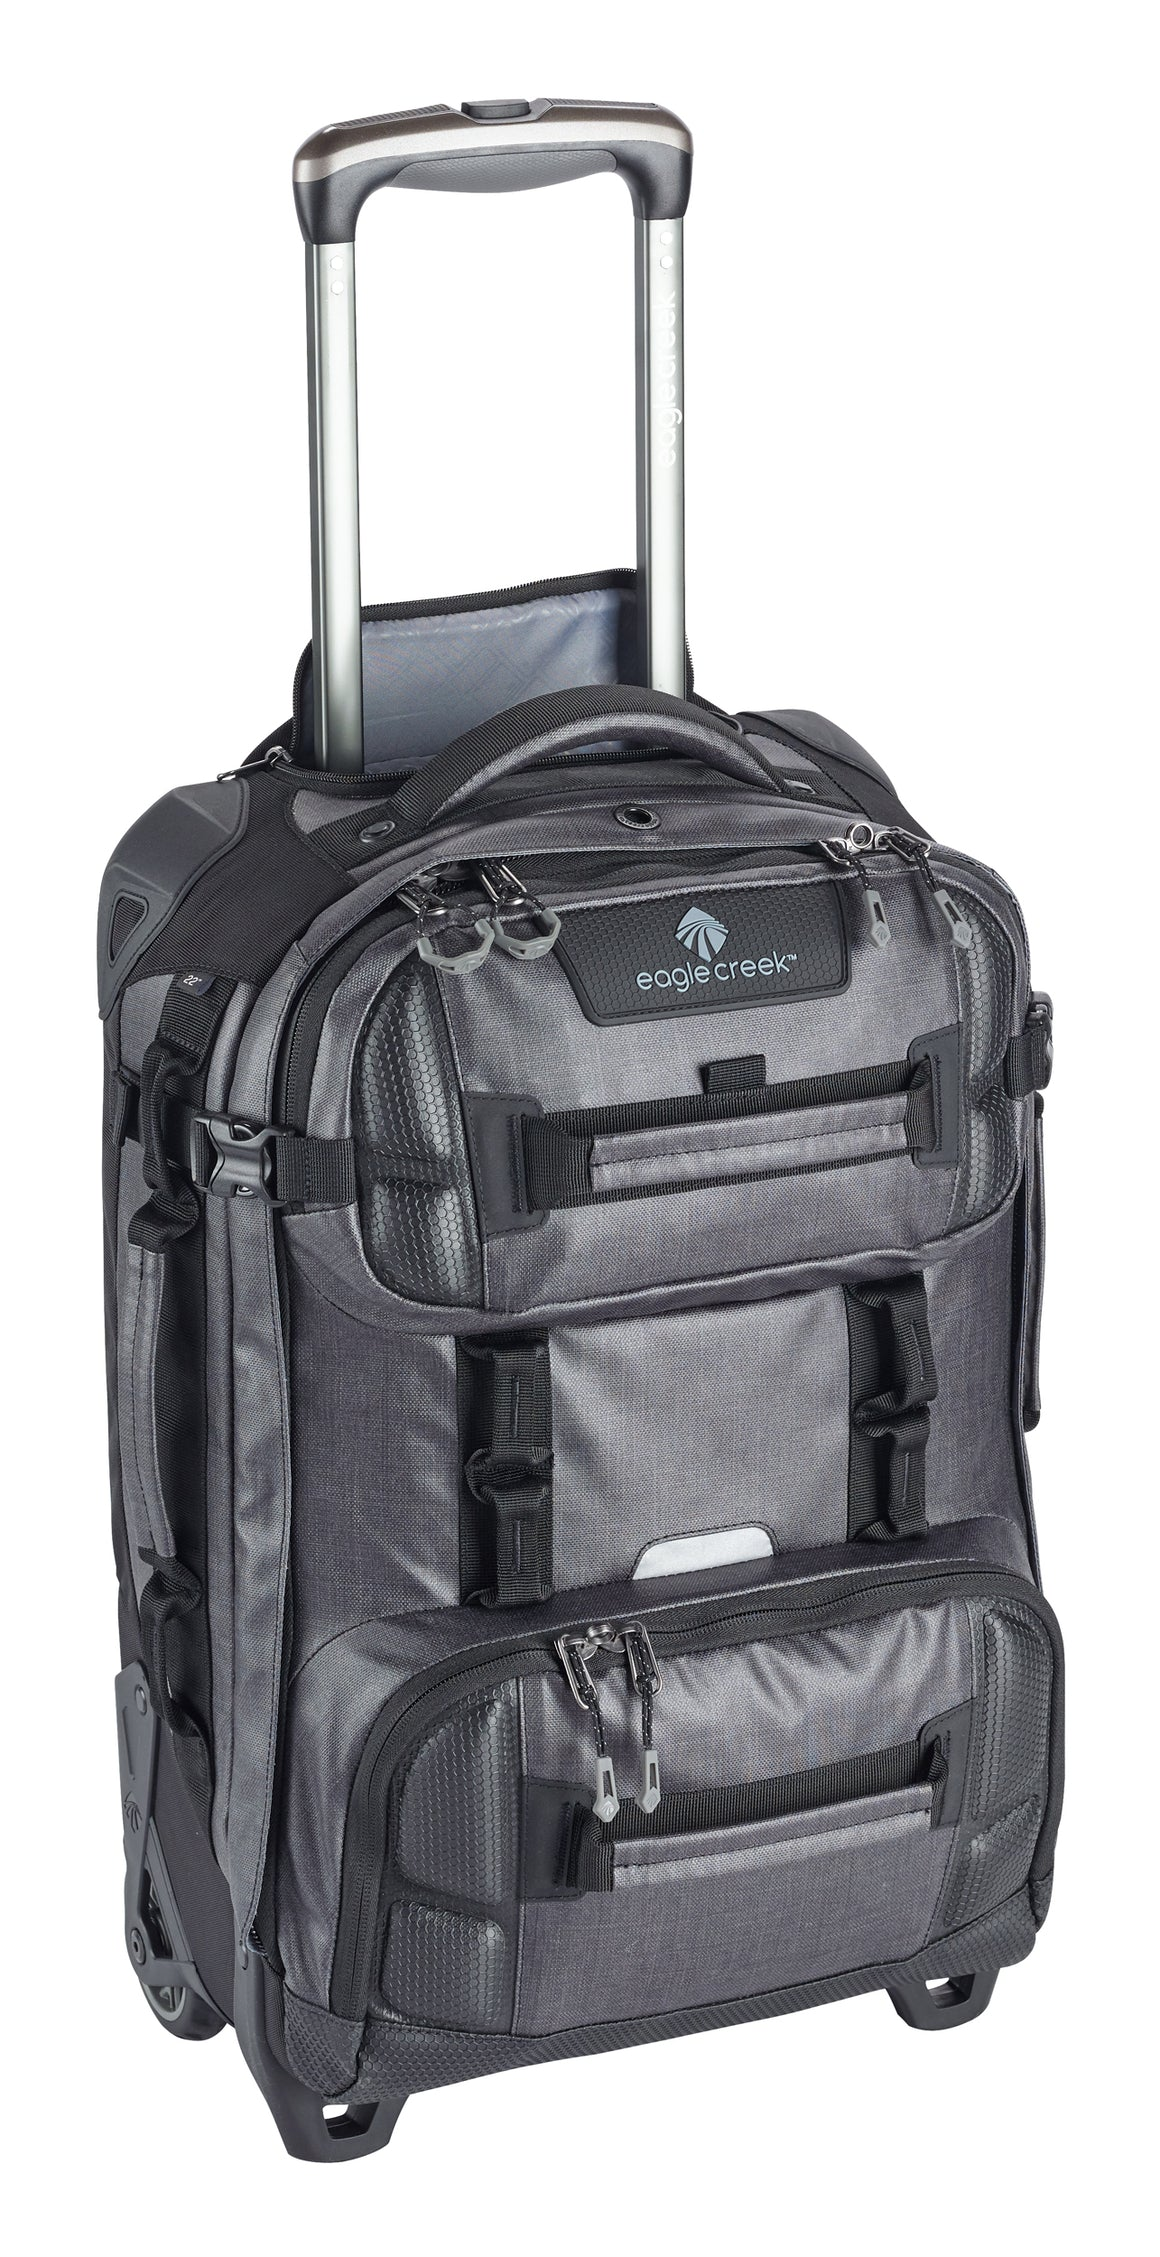 Eagle Creek Orv Duffel 22 Carry-on Natural Stone